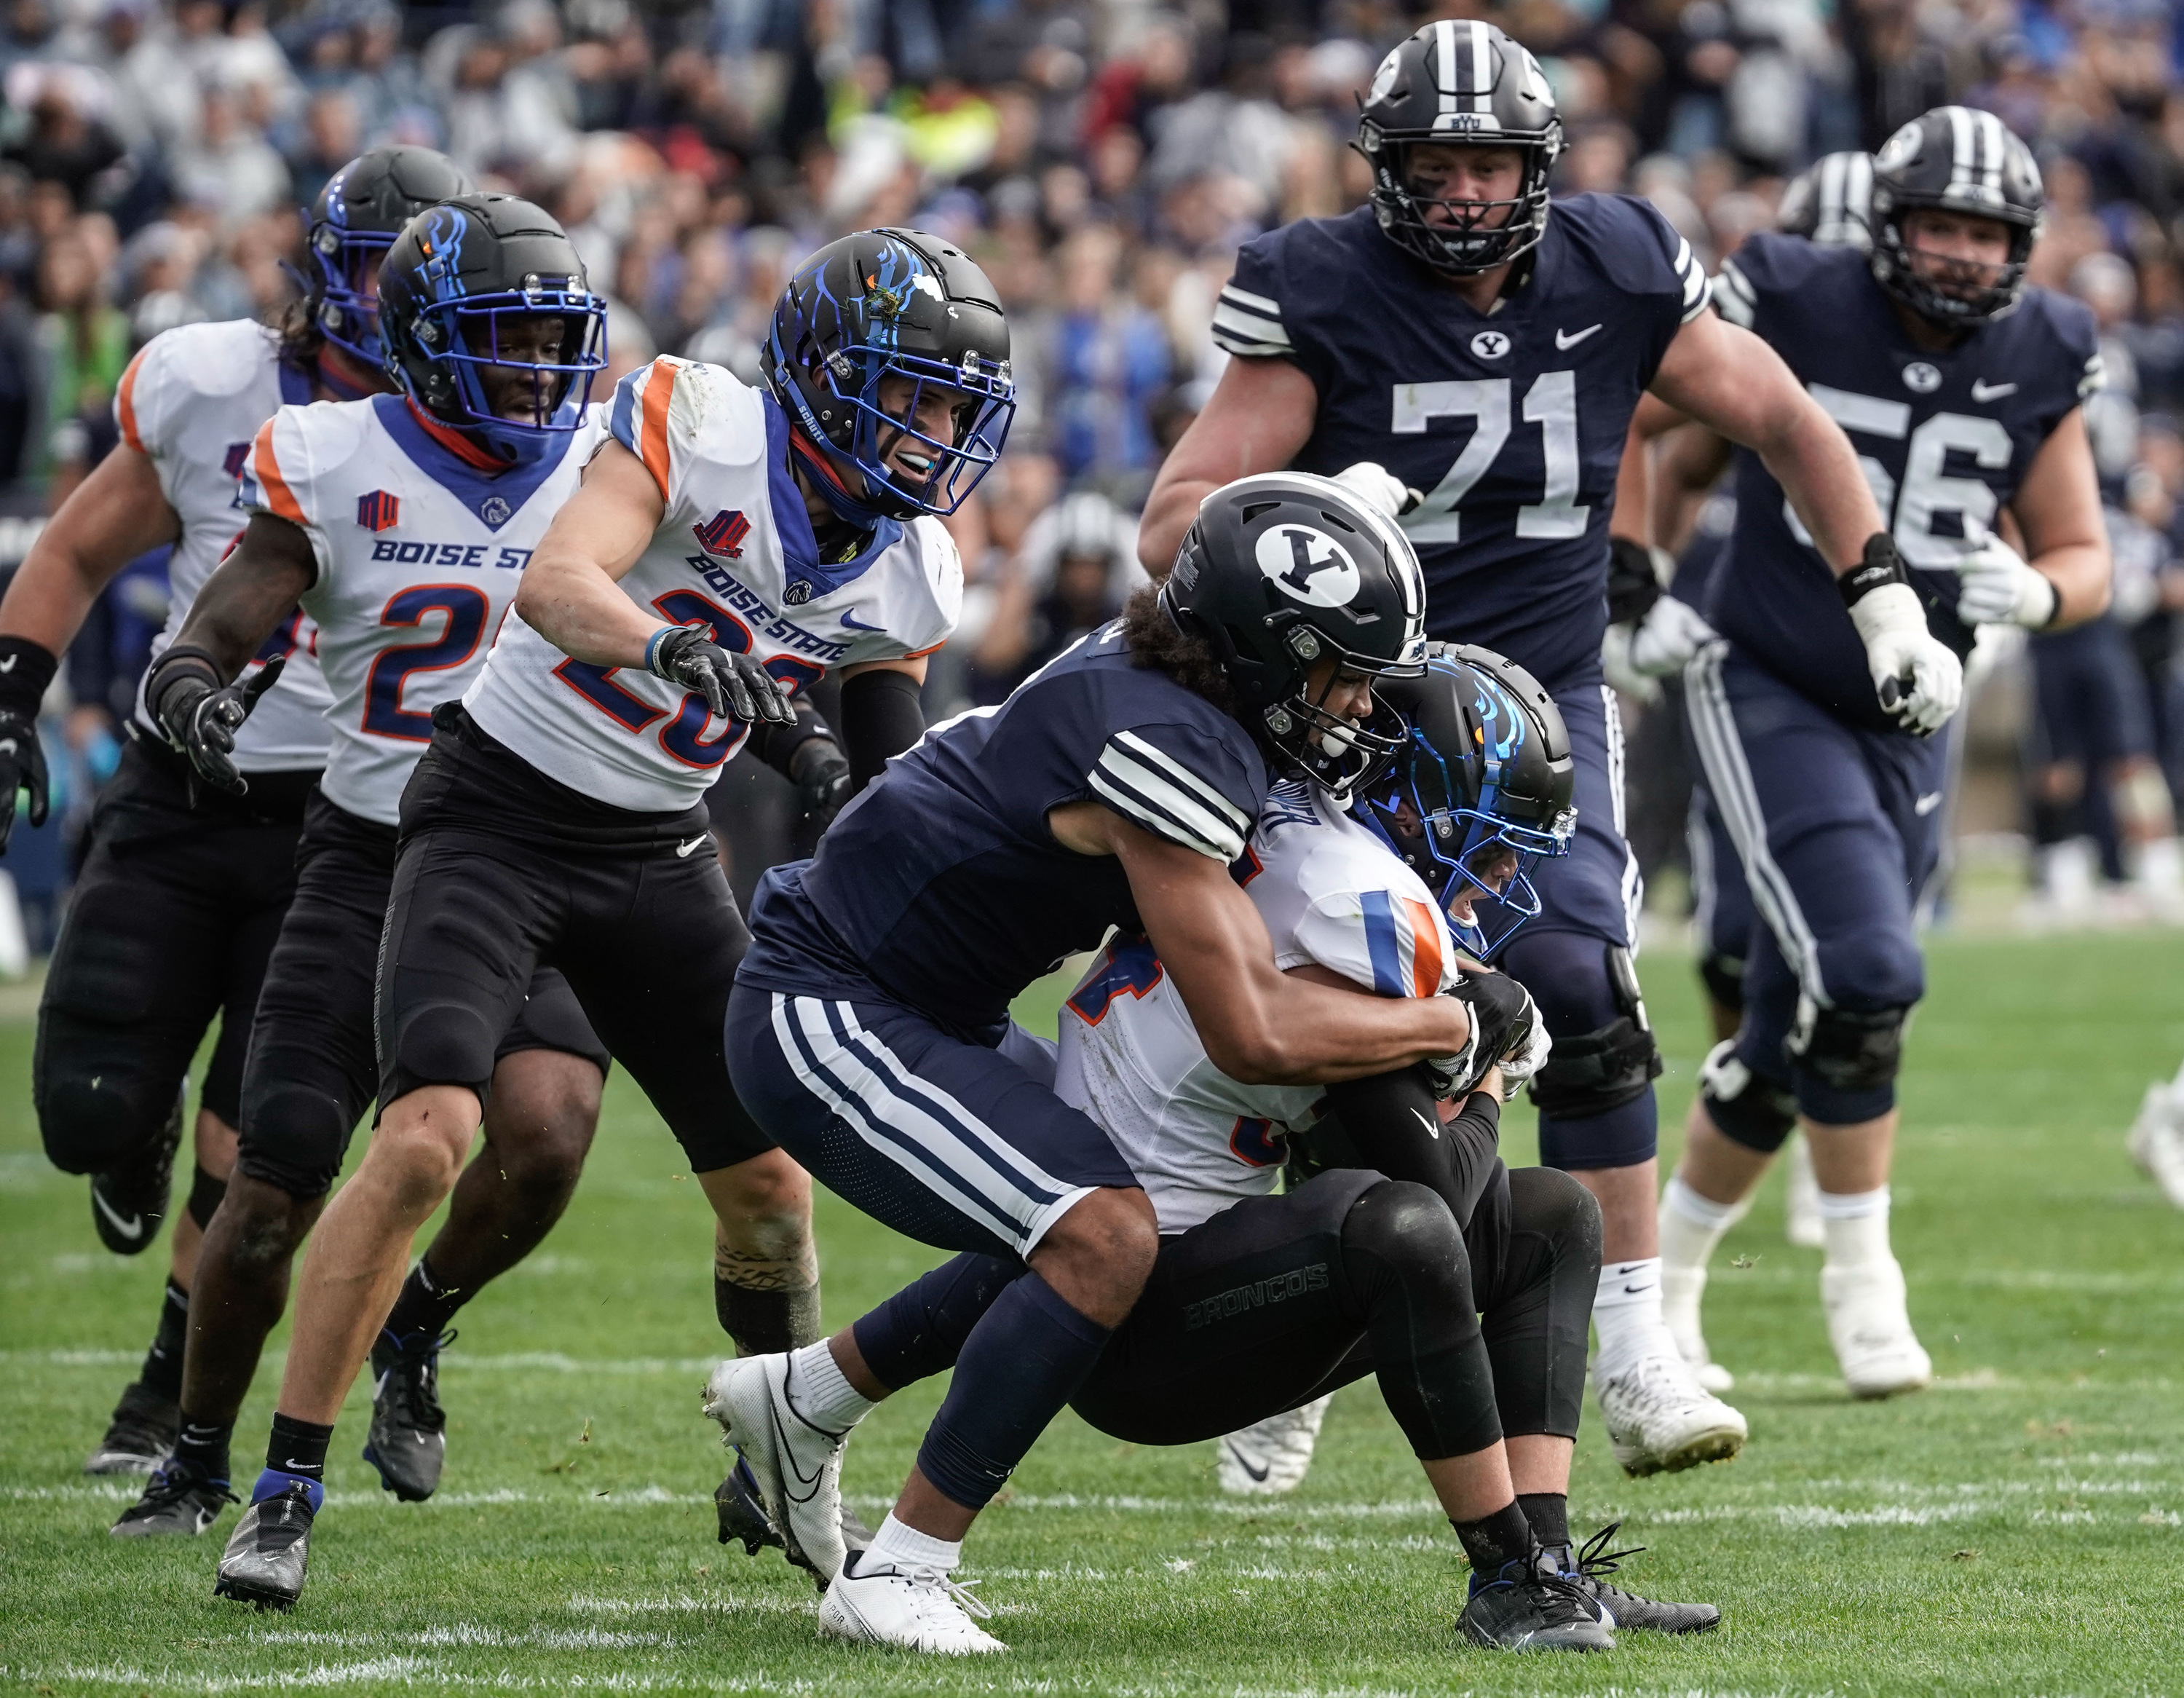 Boise State safety Alexander Teubner, right, gets tackled by BYU wide receiver Keanu Hill after Teubner recovered a BYU fumble.